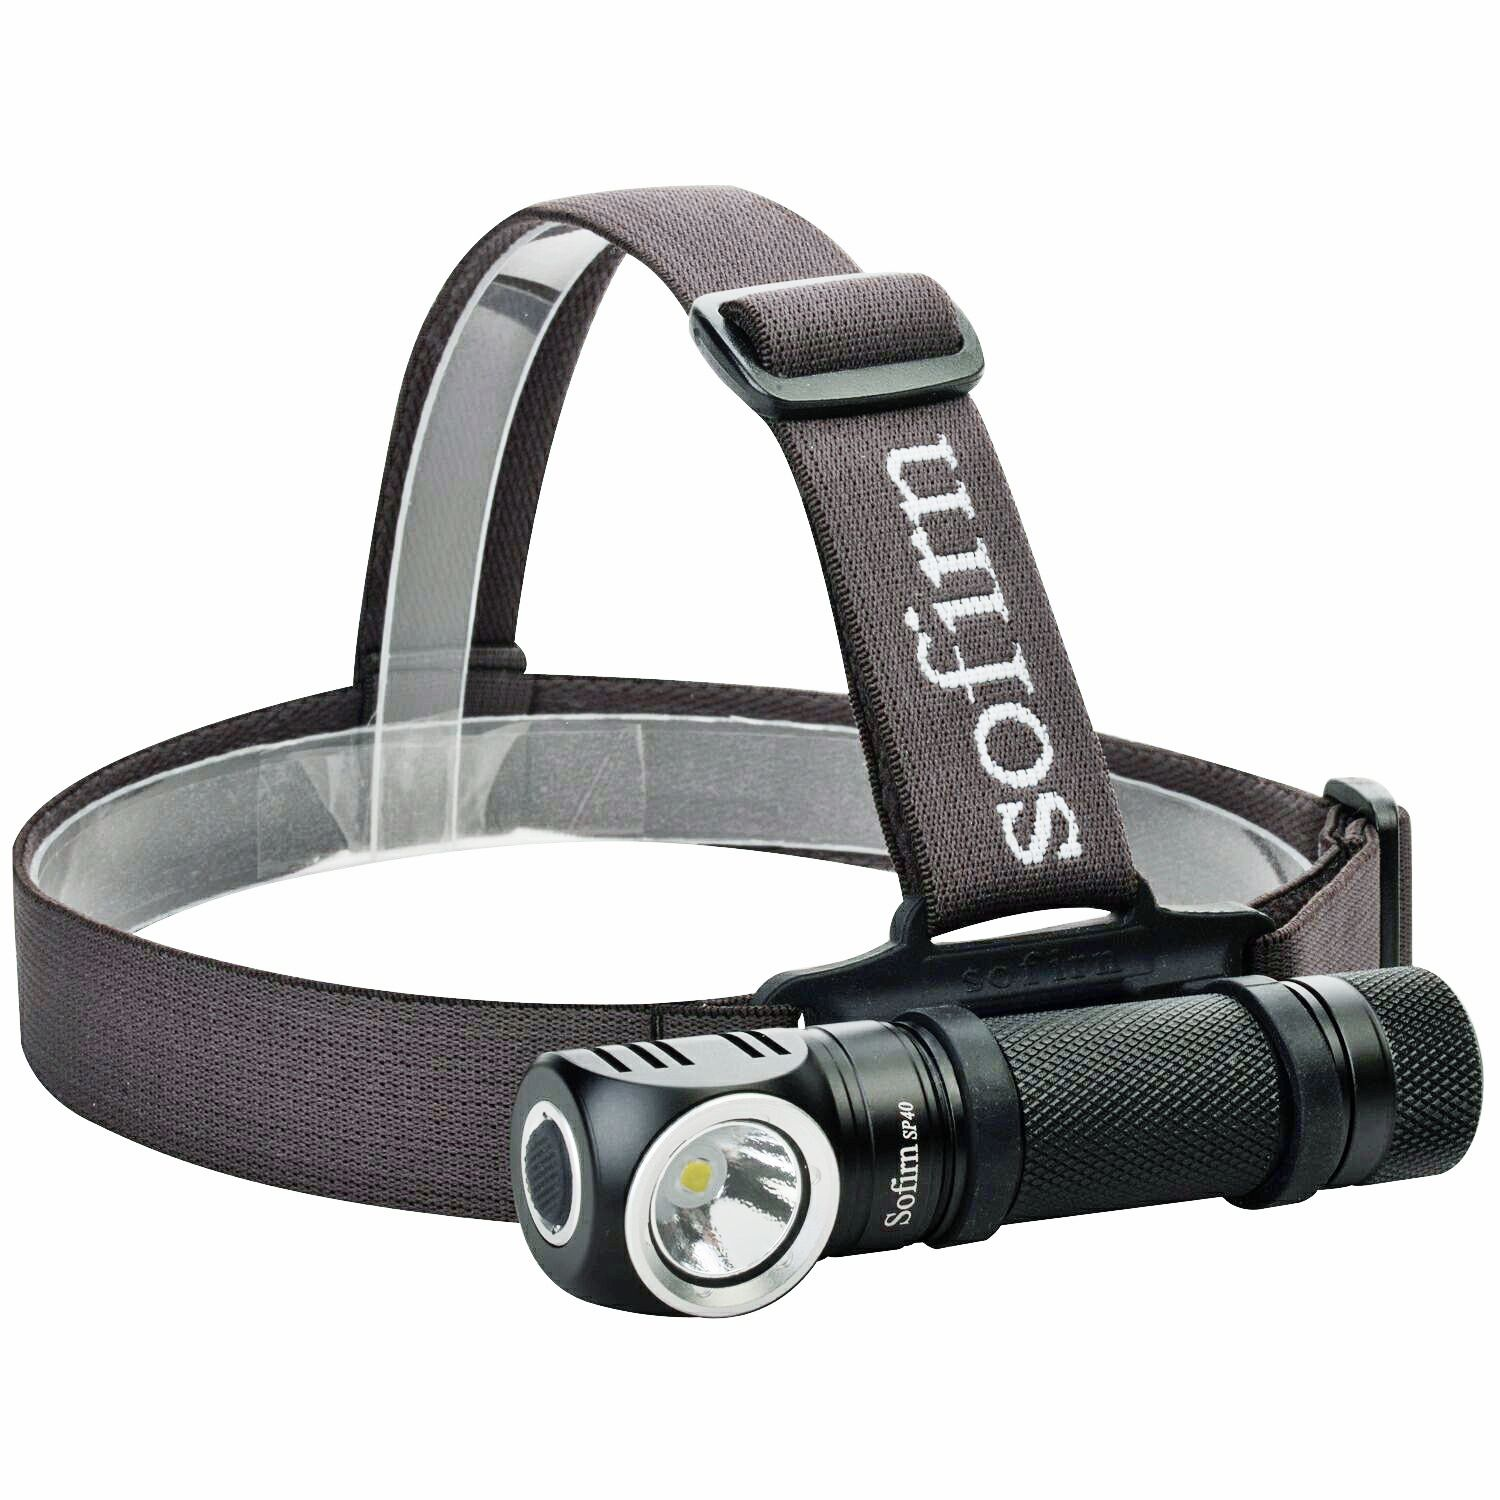 Sofirn SP40 Headlamp LED Cree XPL 18650 Rechargeable USB Charging Power Indicator 18350 1200lm Outdoor Lighting Magnet Tail Cup